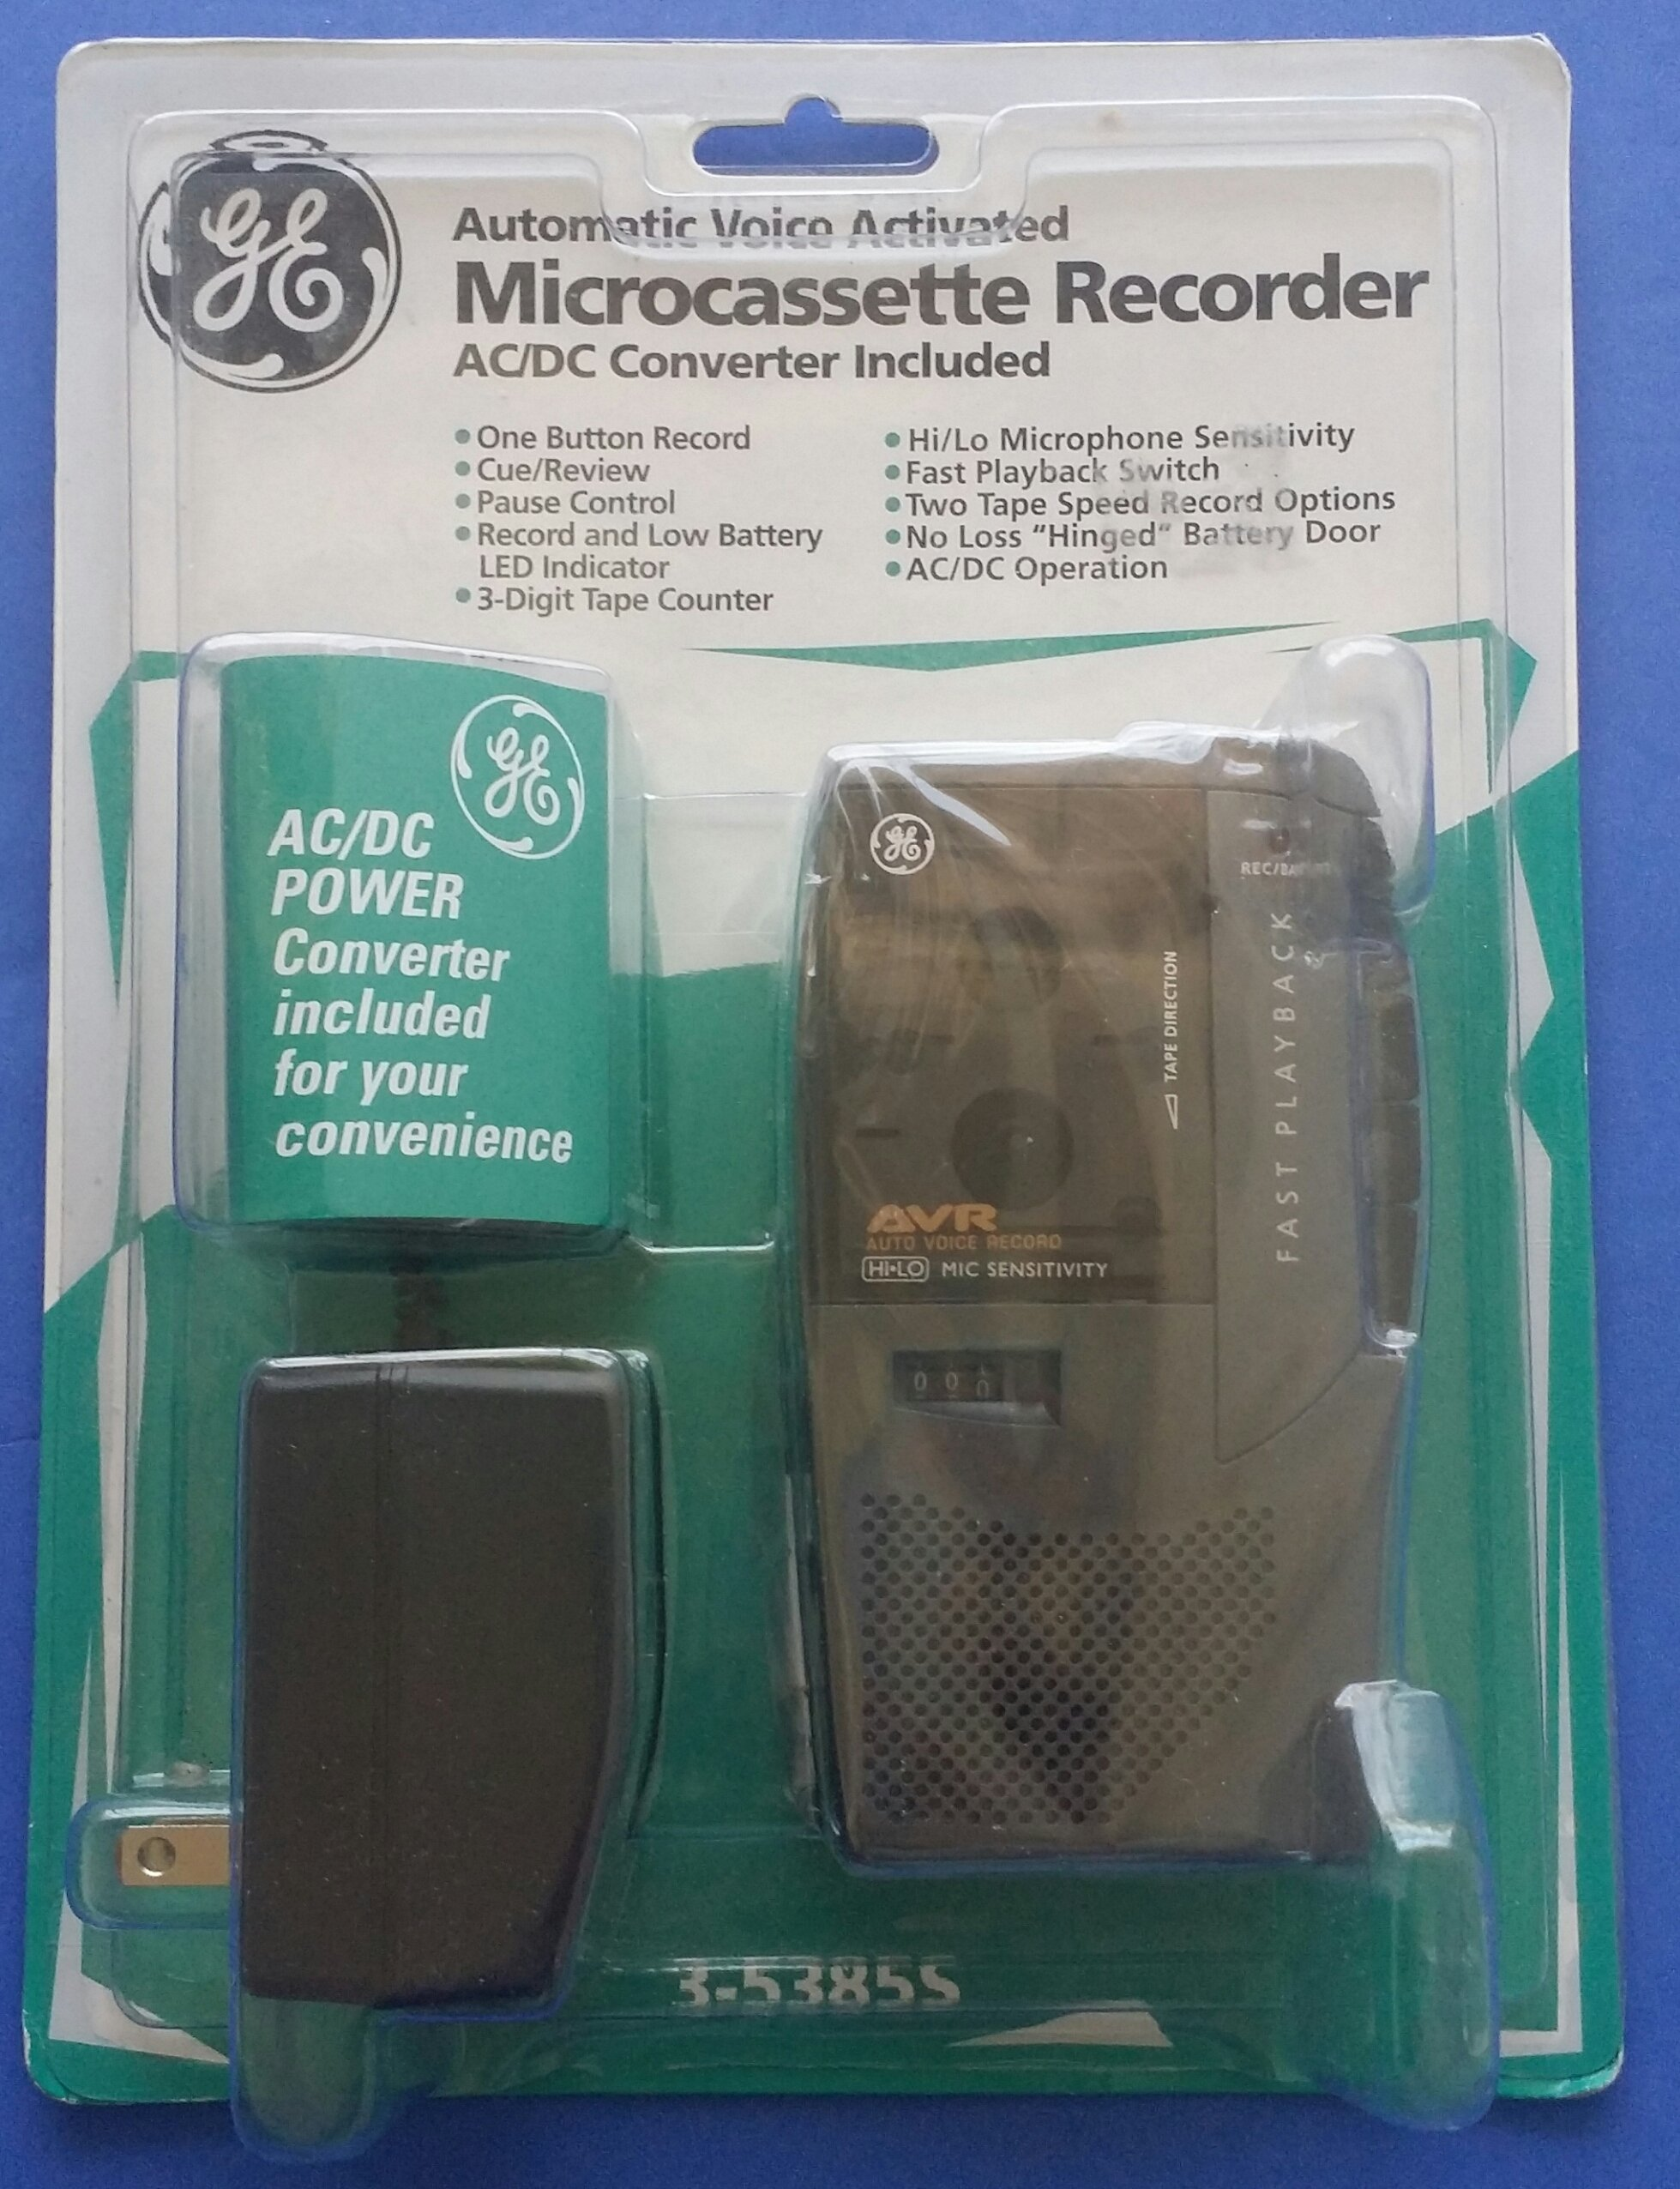 Ge 3-5385s Automatic Voice Activated Microcassette Recorder